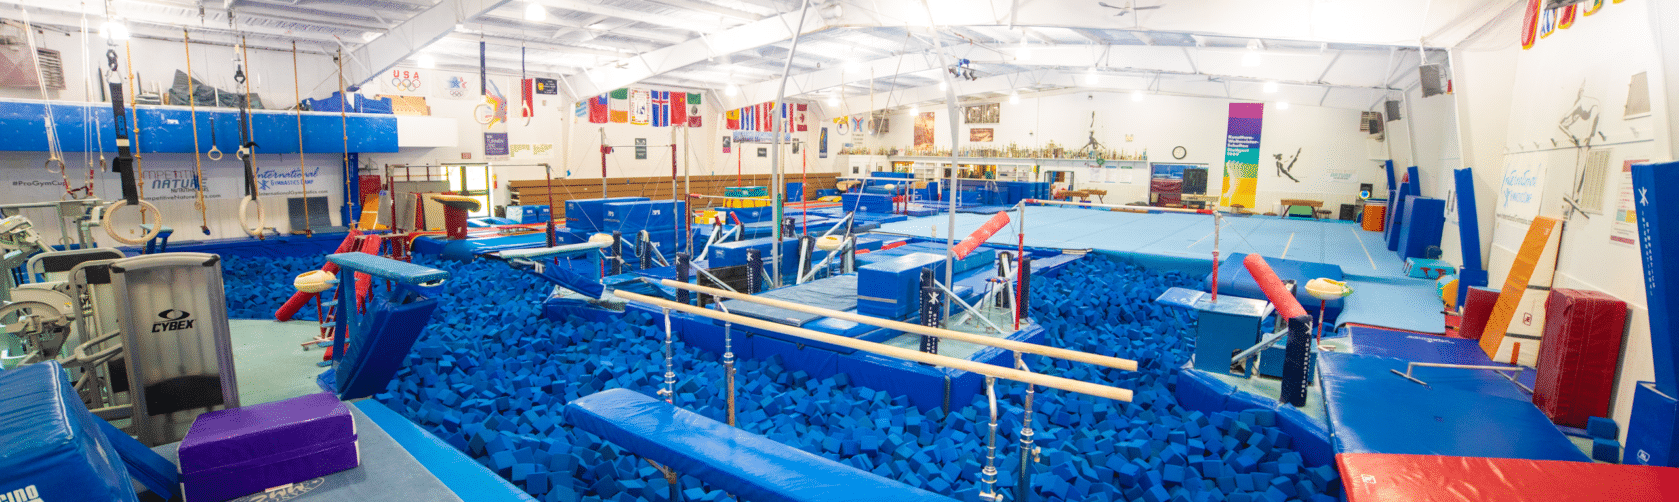 Gymnasium with foam pit and bars